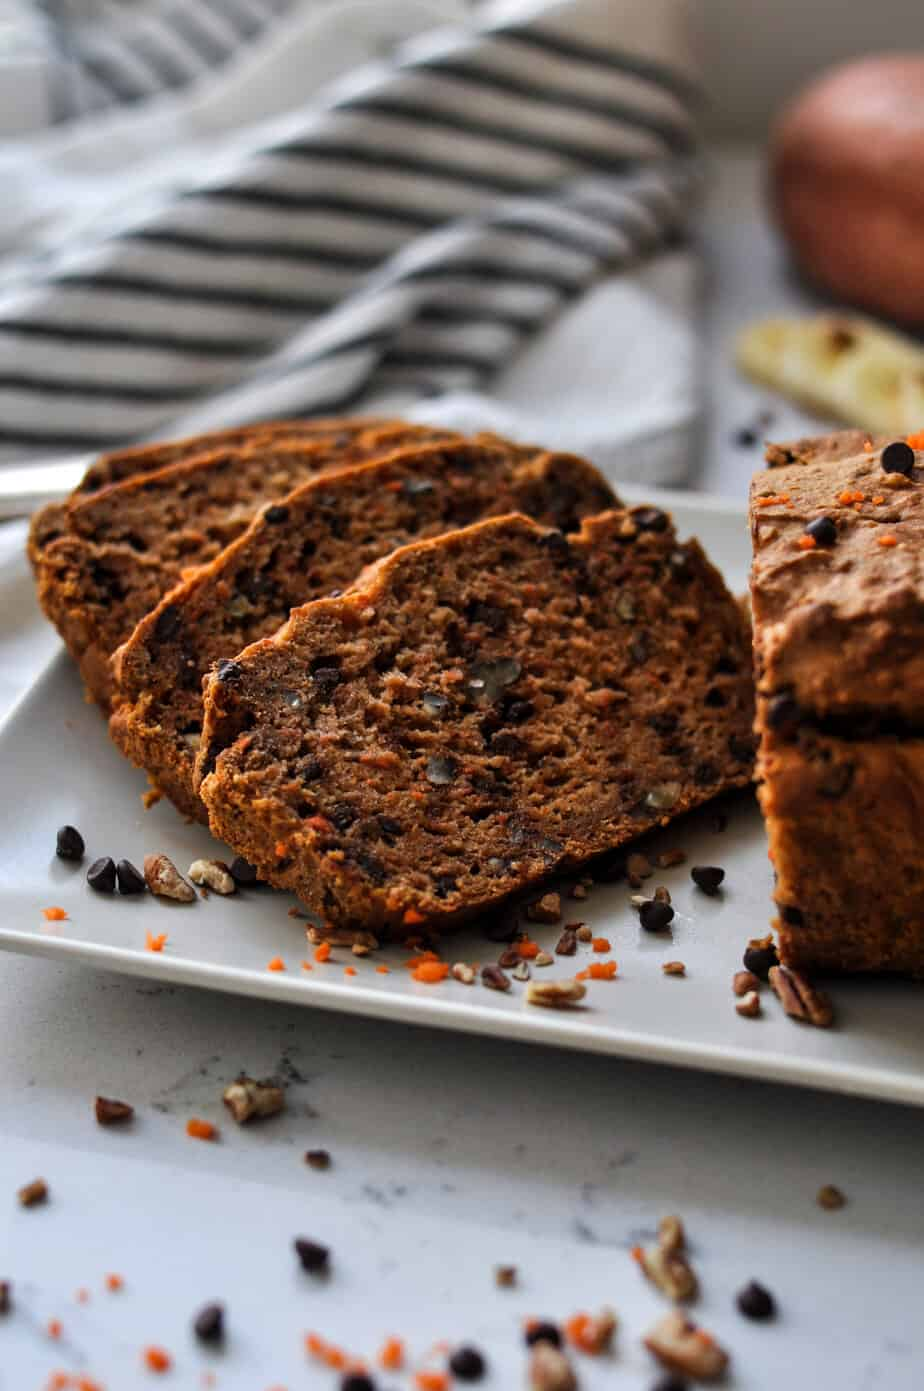 Four pieces of chocolate chip carrot bread showing the perfect texture and chocolate chips inside